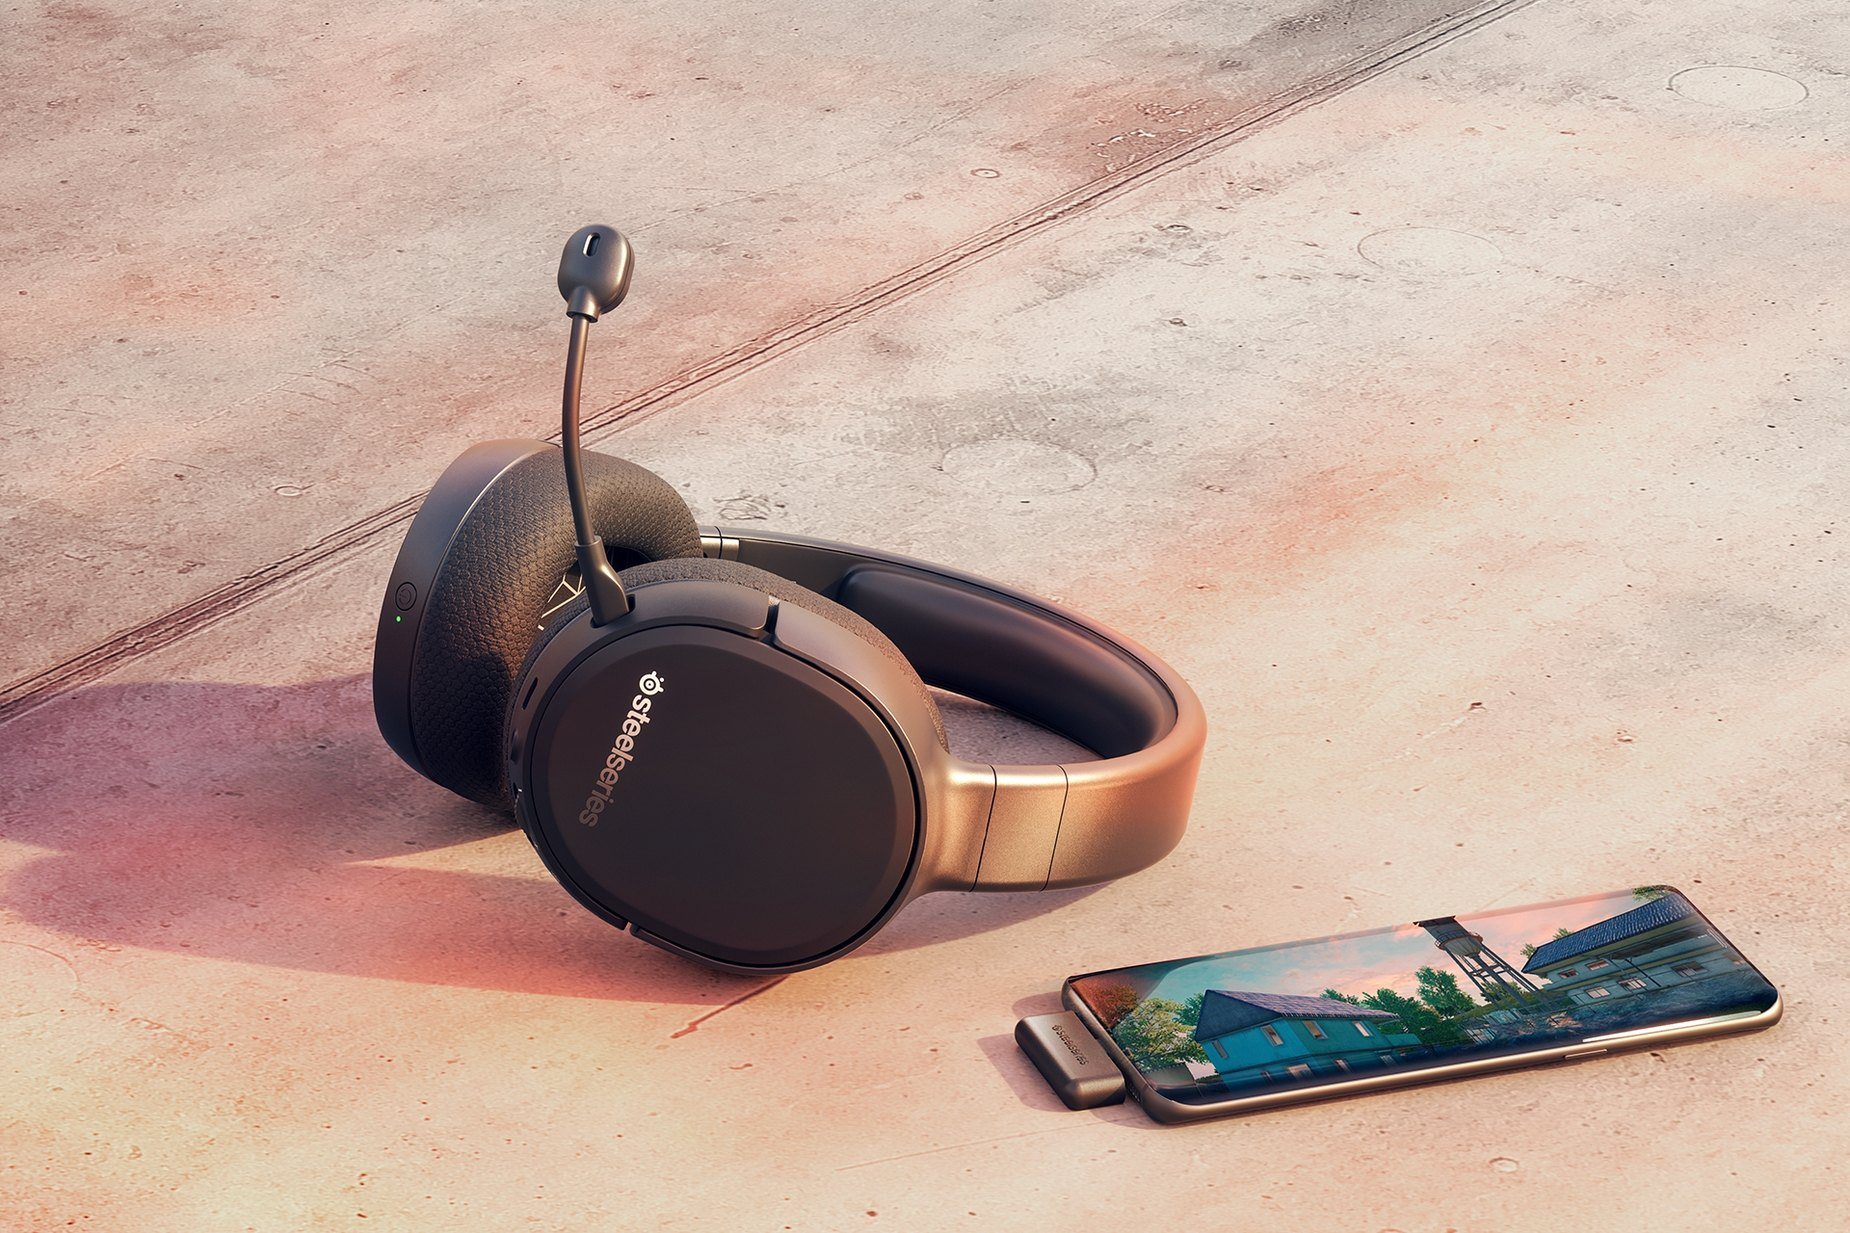 Arctis 1 Wireless for Switch gaming headset on surface next to a mobile device, connected via the wireless dongle